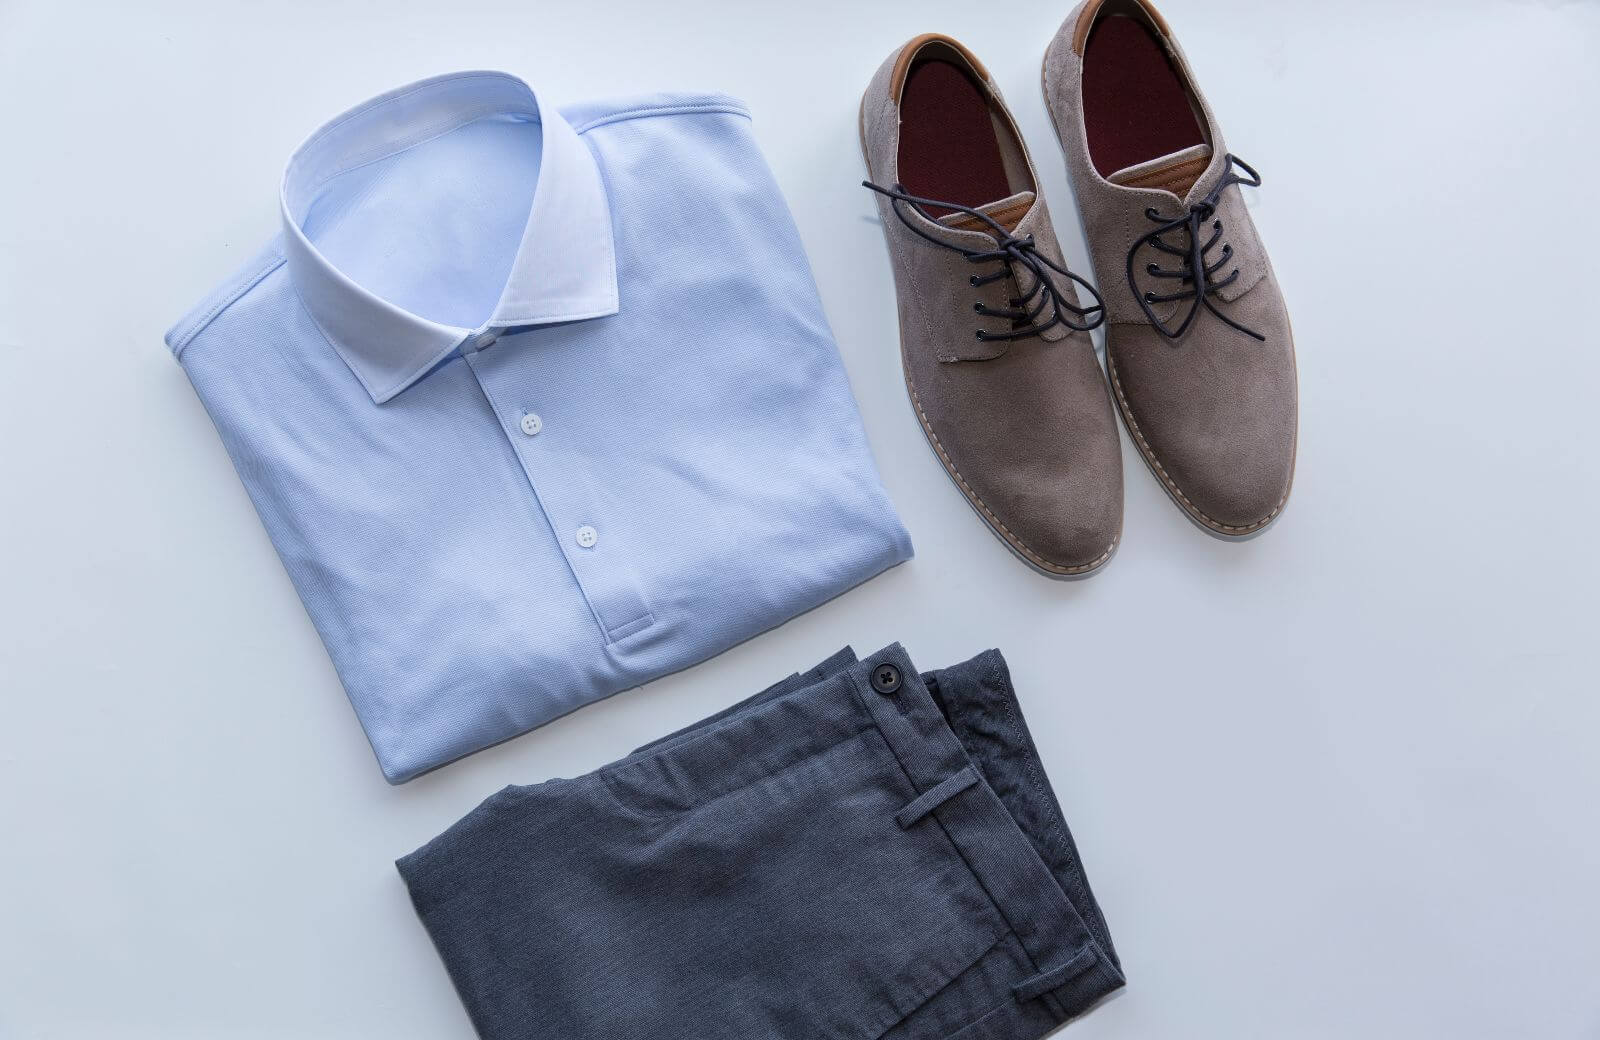 global-workplace-practices-dress-code